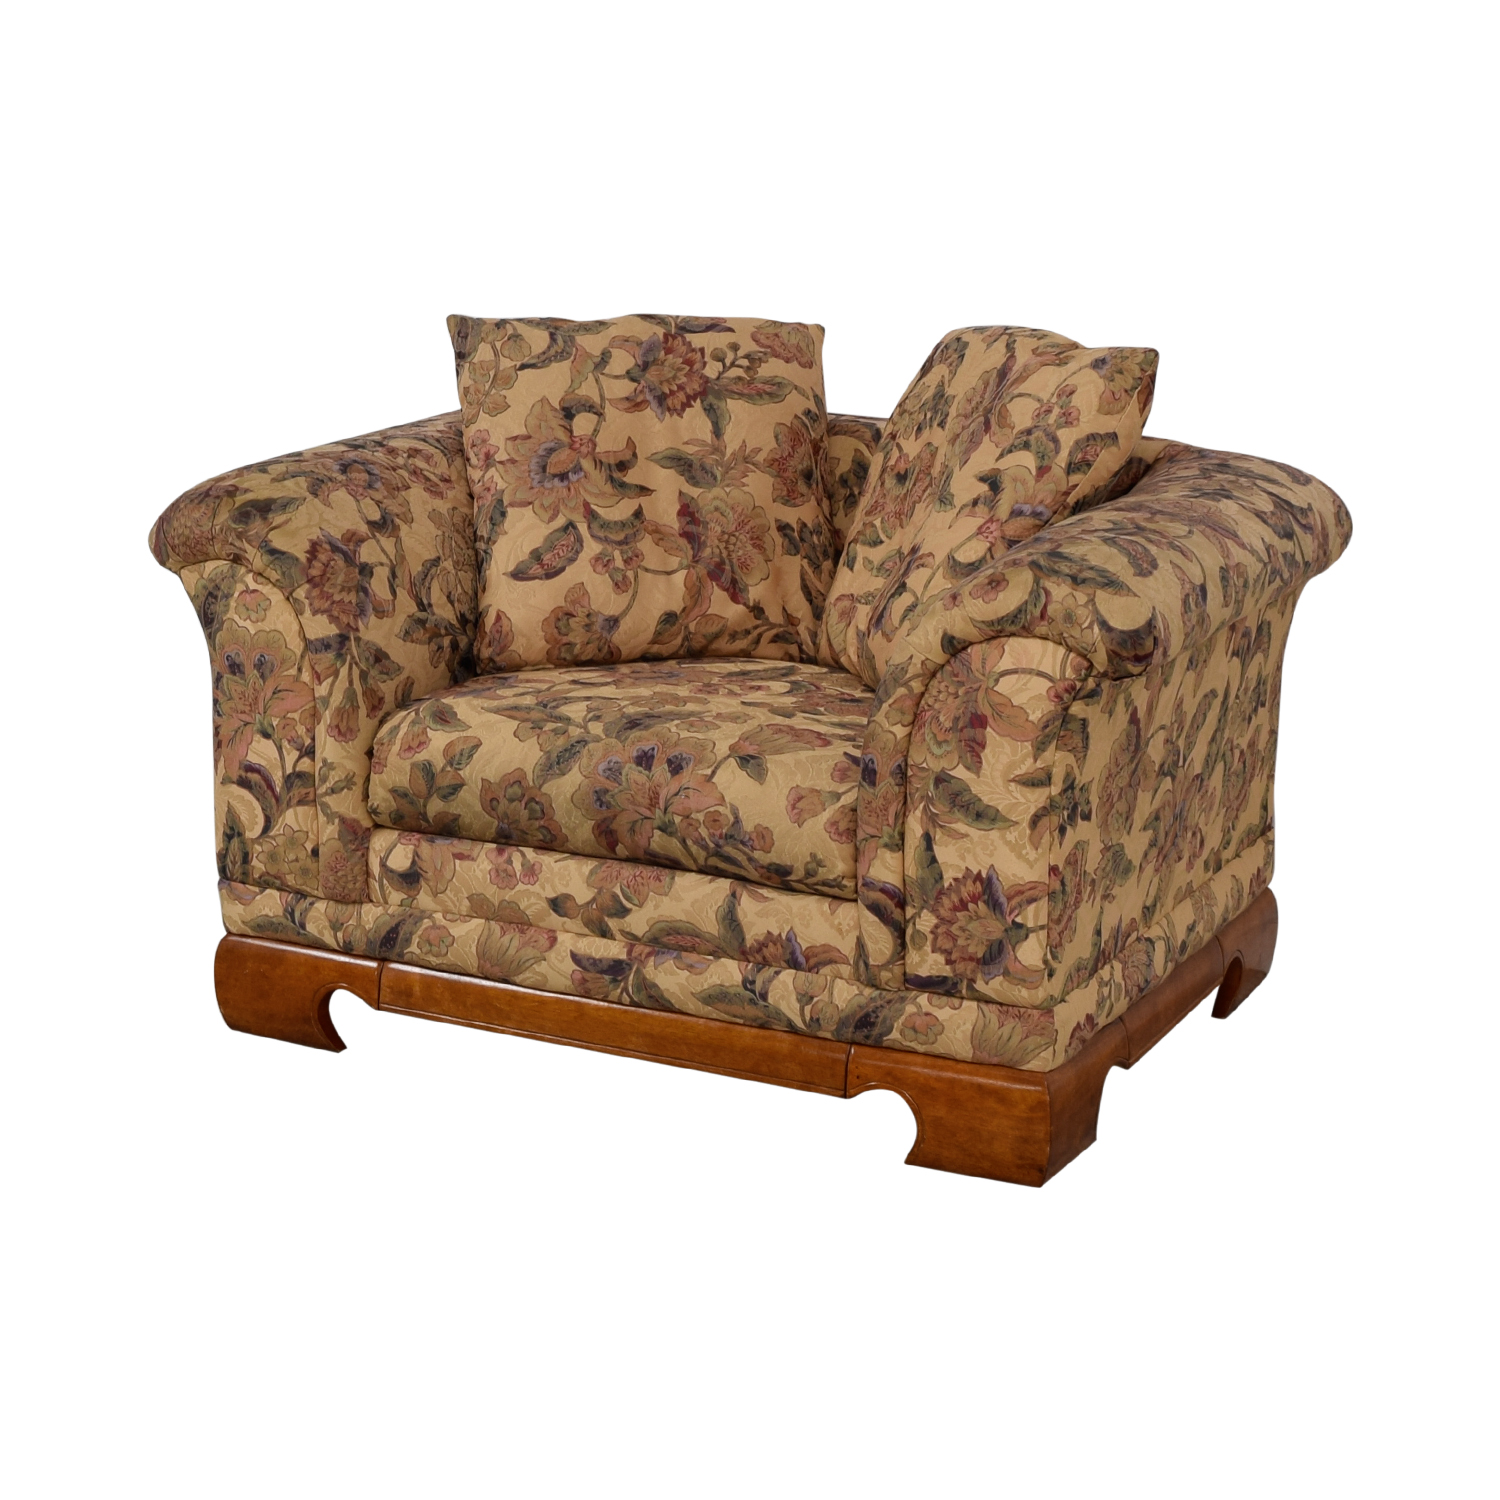 Sealy Leather Sofa: Sealy Furniture Sealy Furniture Floral Print